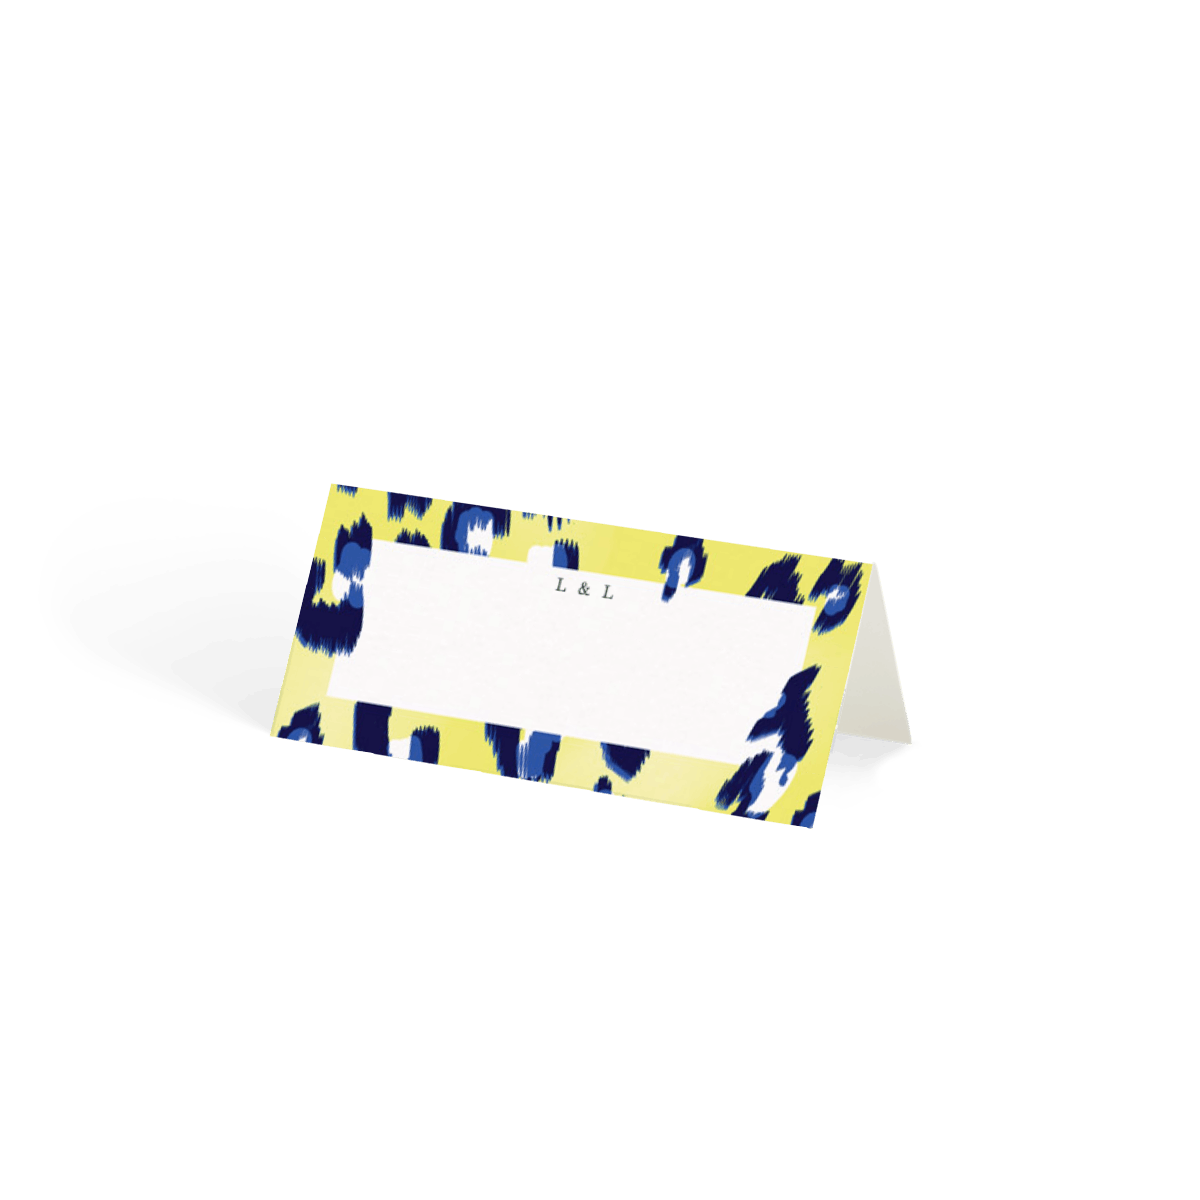 Https%3a%2f%2fwww.papier.com%2fproduct image%2f9598%2f8%2felectro leopard 2427 front 1469553820.png?ixlib=rb 1.1